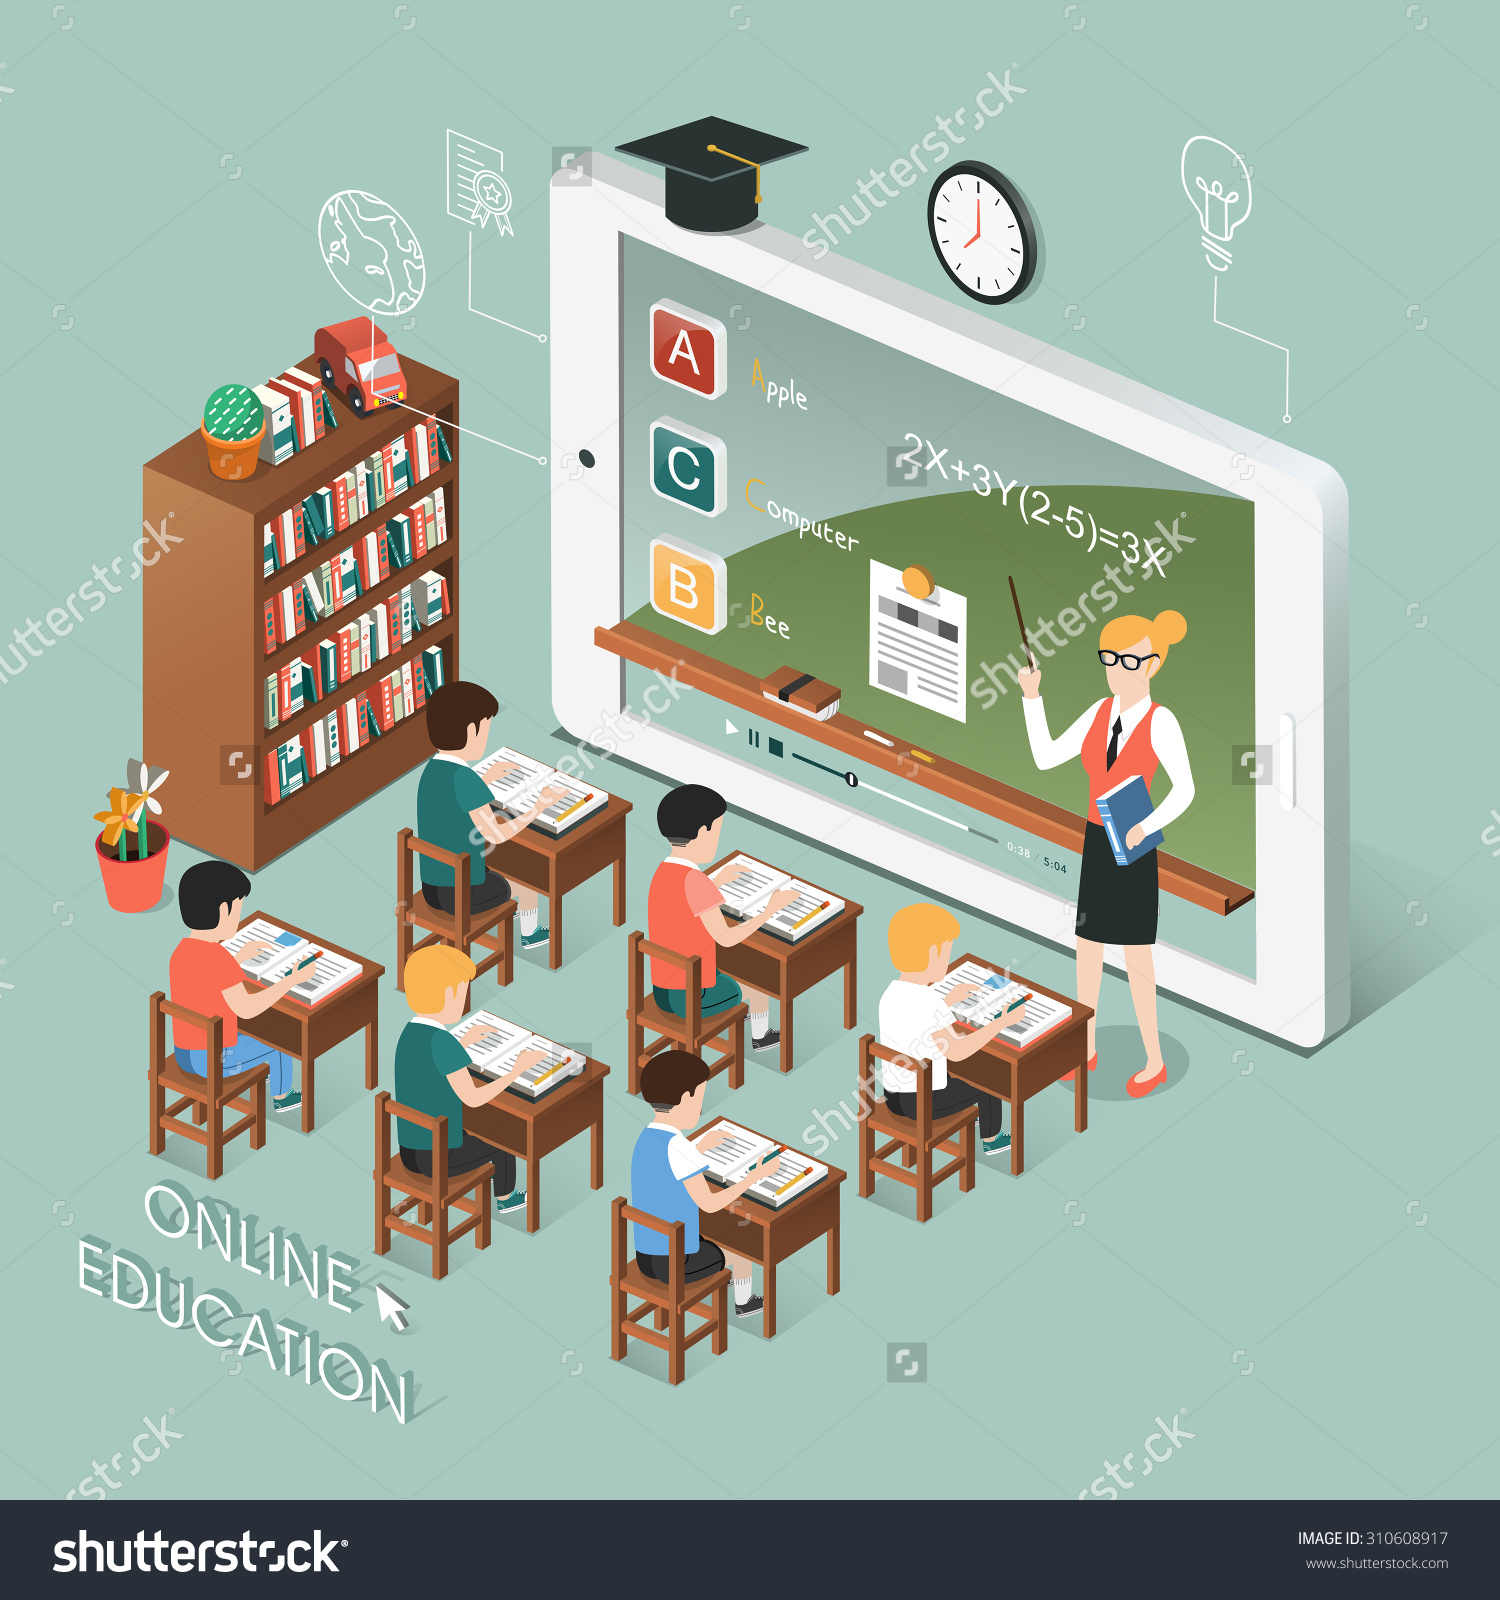 Flat 3d Isometric Design Of Online Education With Tablet